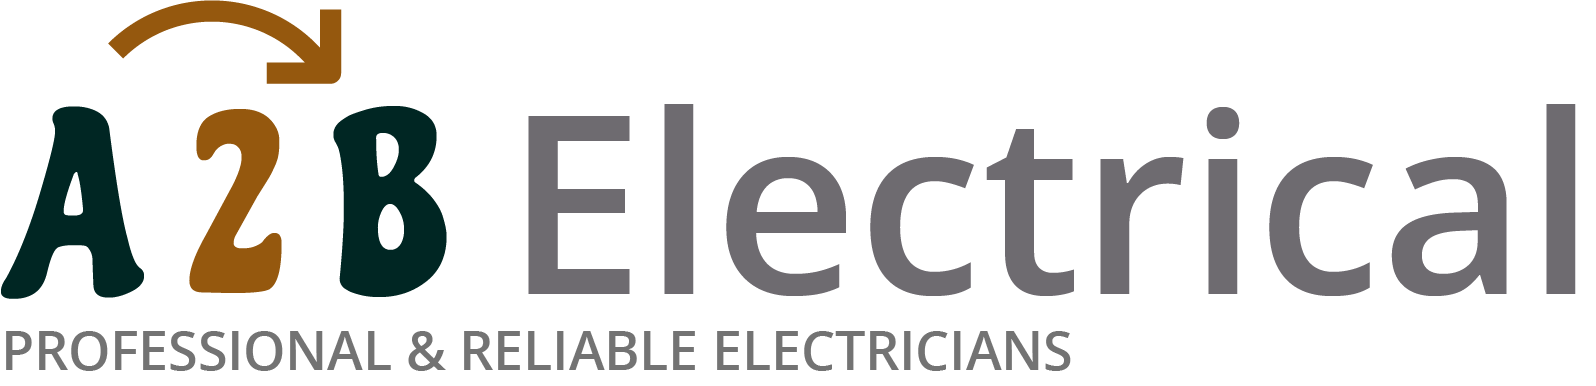 If you have electrical wiring problems in West Drayton, we can provide an electrician to have a look for you.